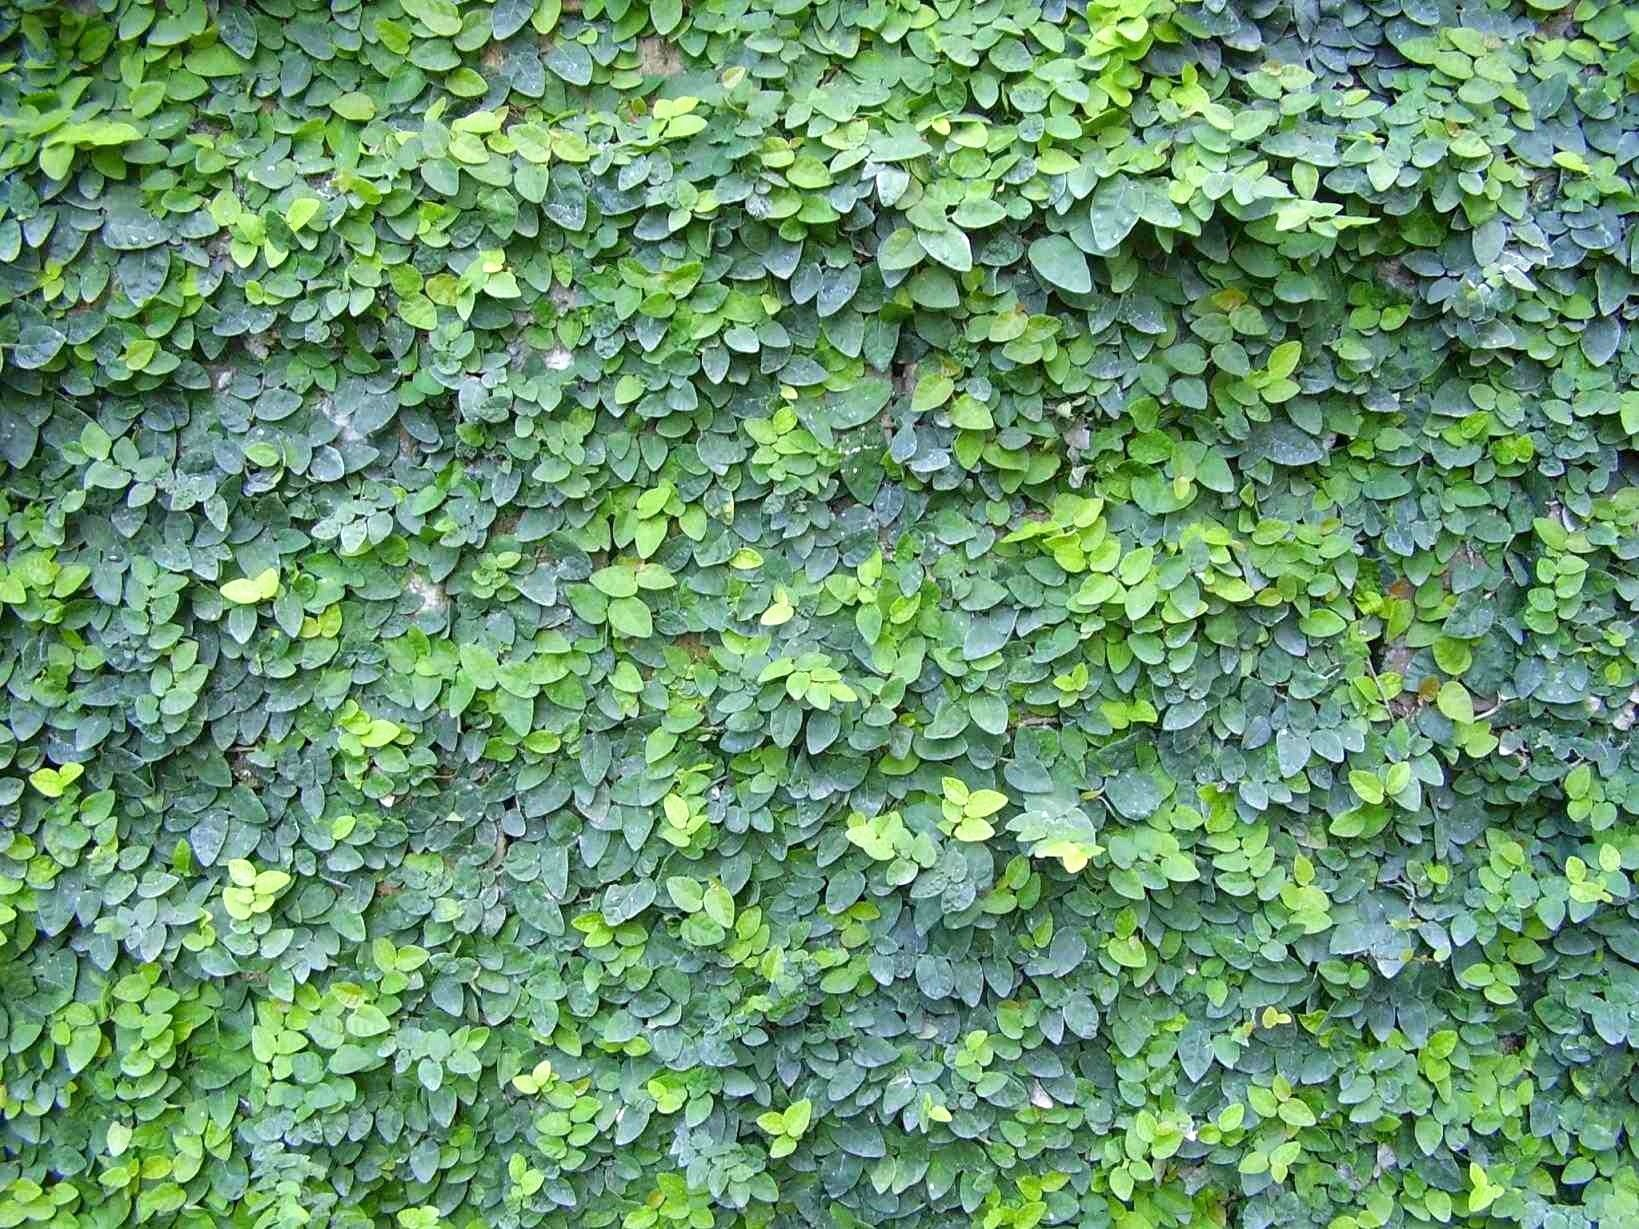 Creeping Fig Vine - Ficus Pumila - 10 Live Fully Rooted Plants - Climbing Ivy by Florida Foliage (Image #7)